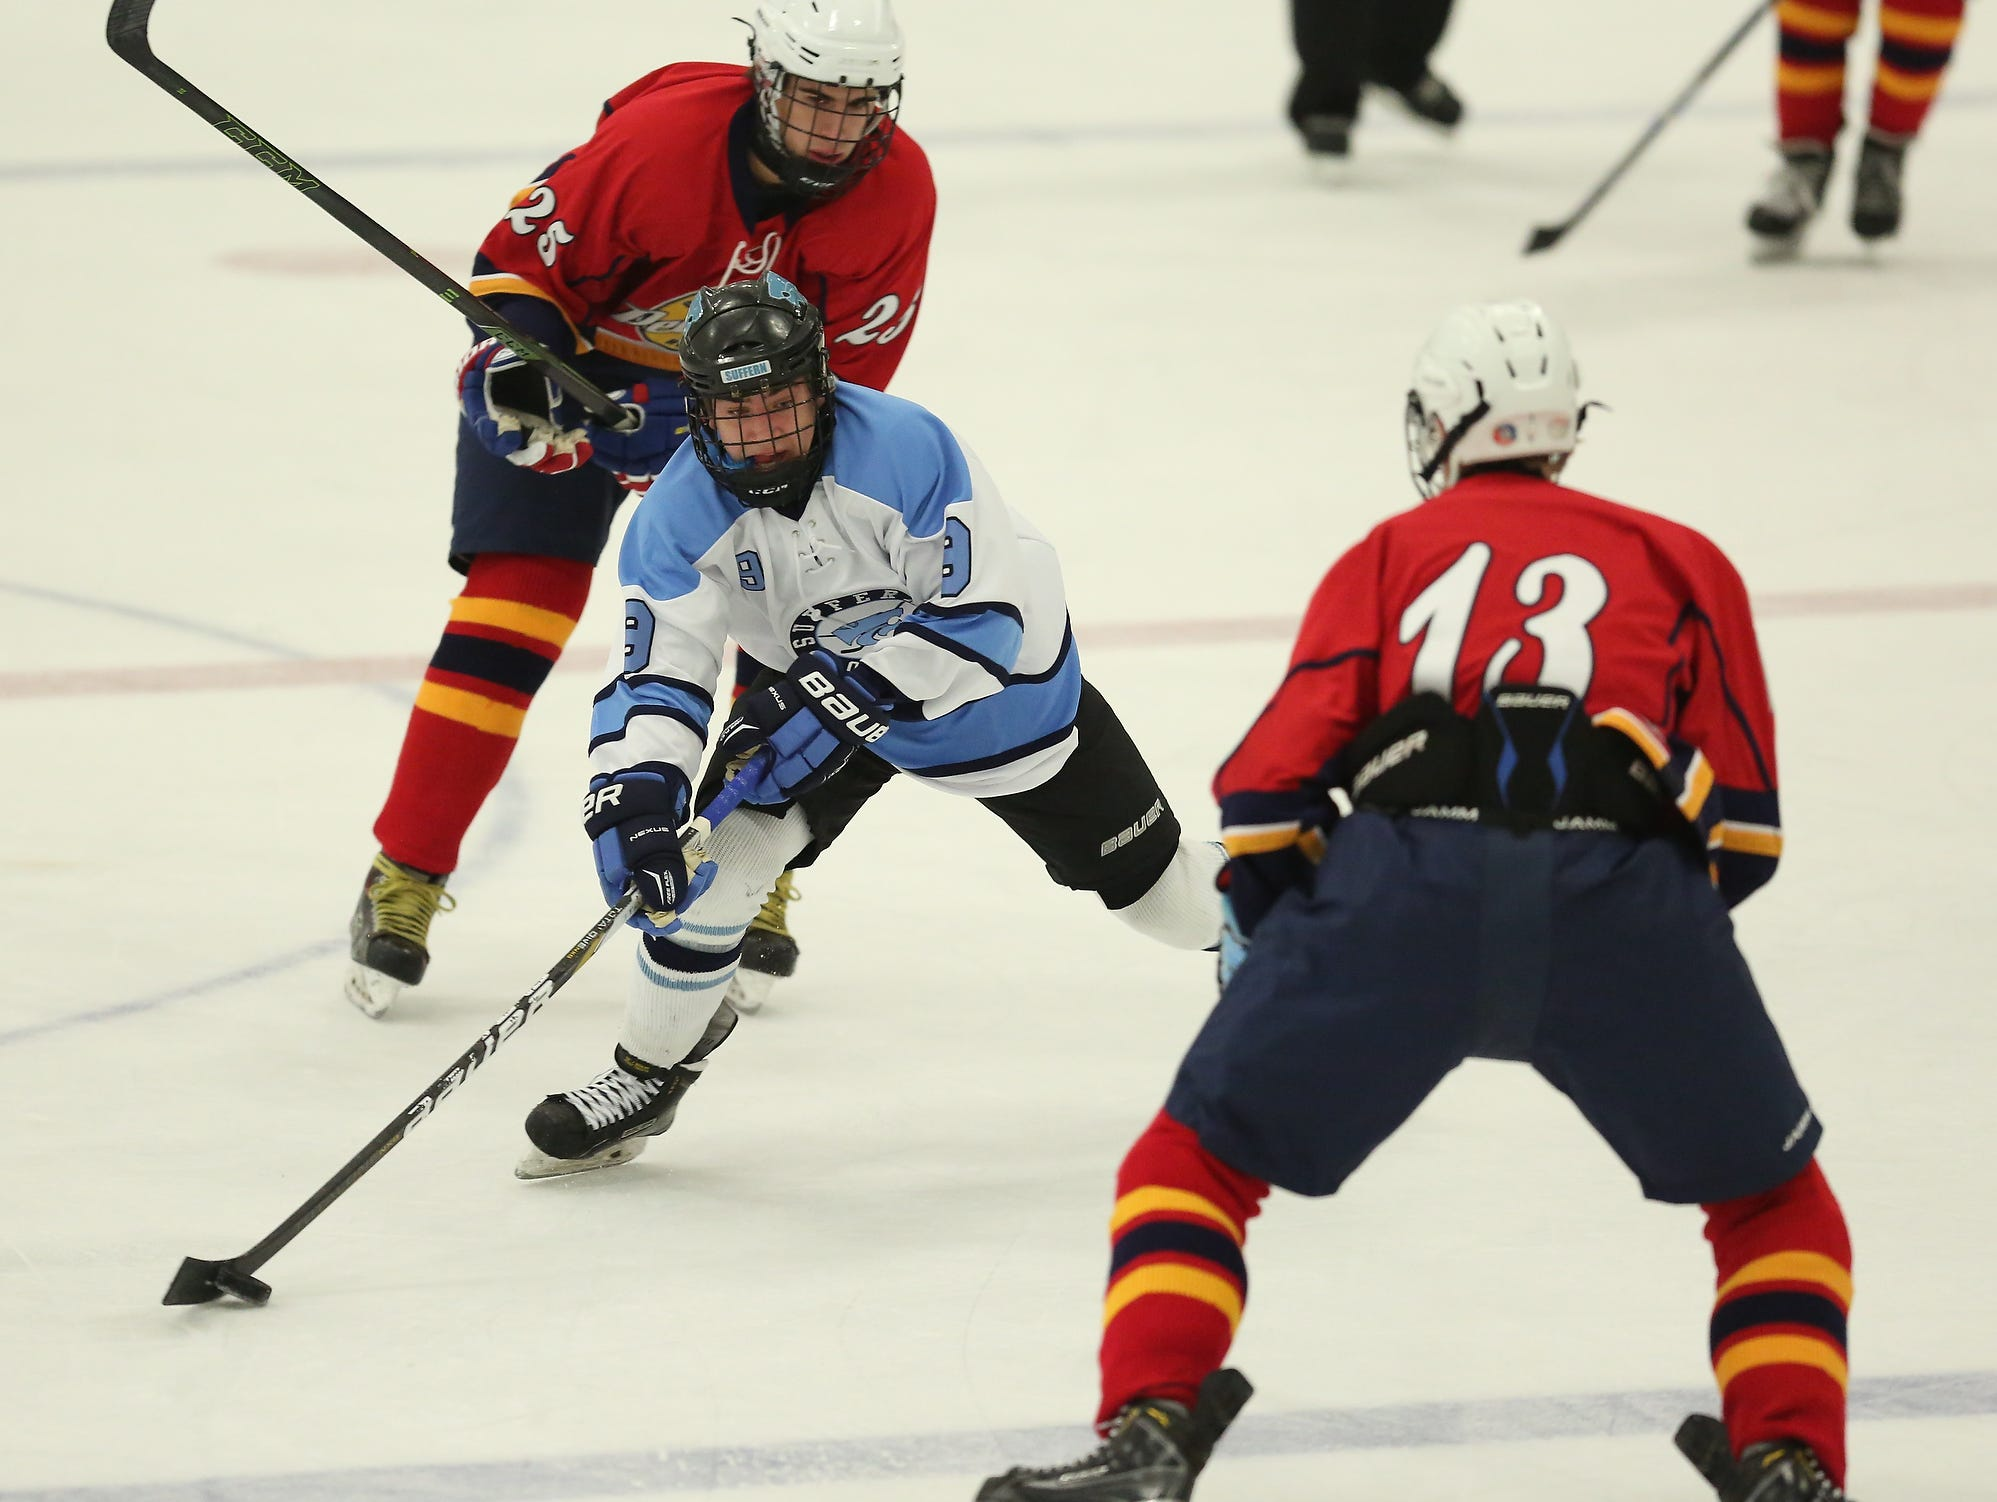 Suffern's Tim Patwell (9) skates the puck across the red-line during a varsity ice hockey game at Sport -O-Rama in Monsey on Saturday, Nov. 28, 2015.